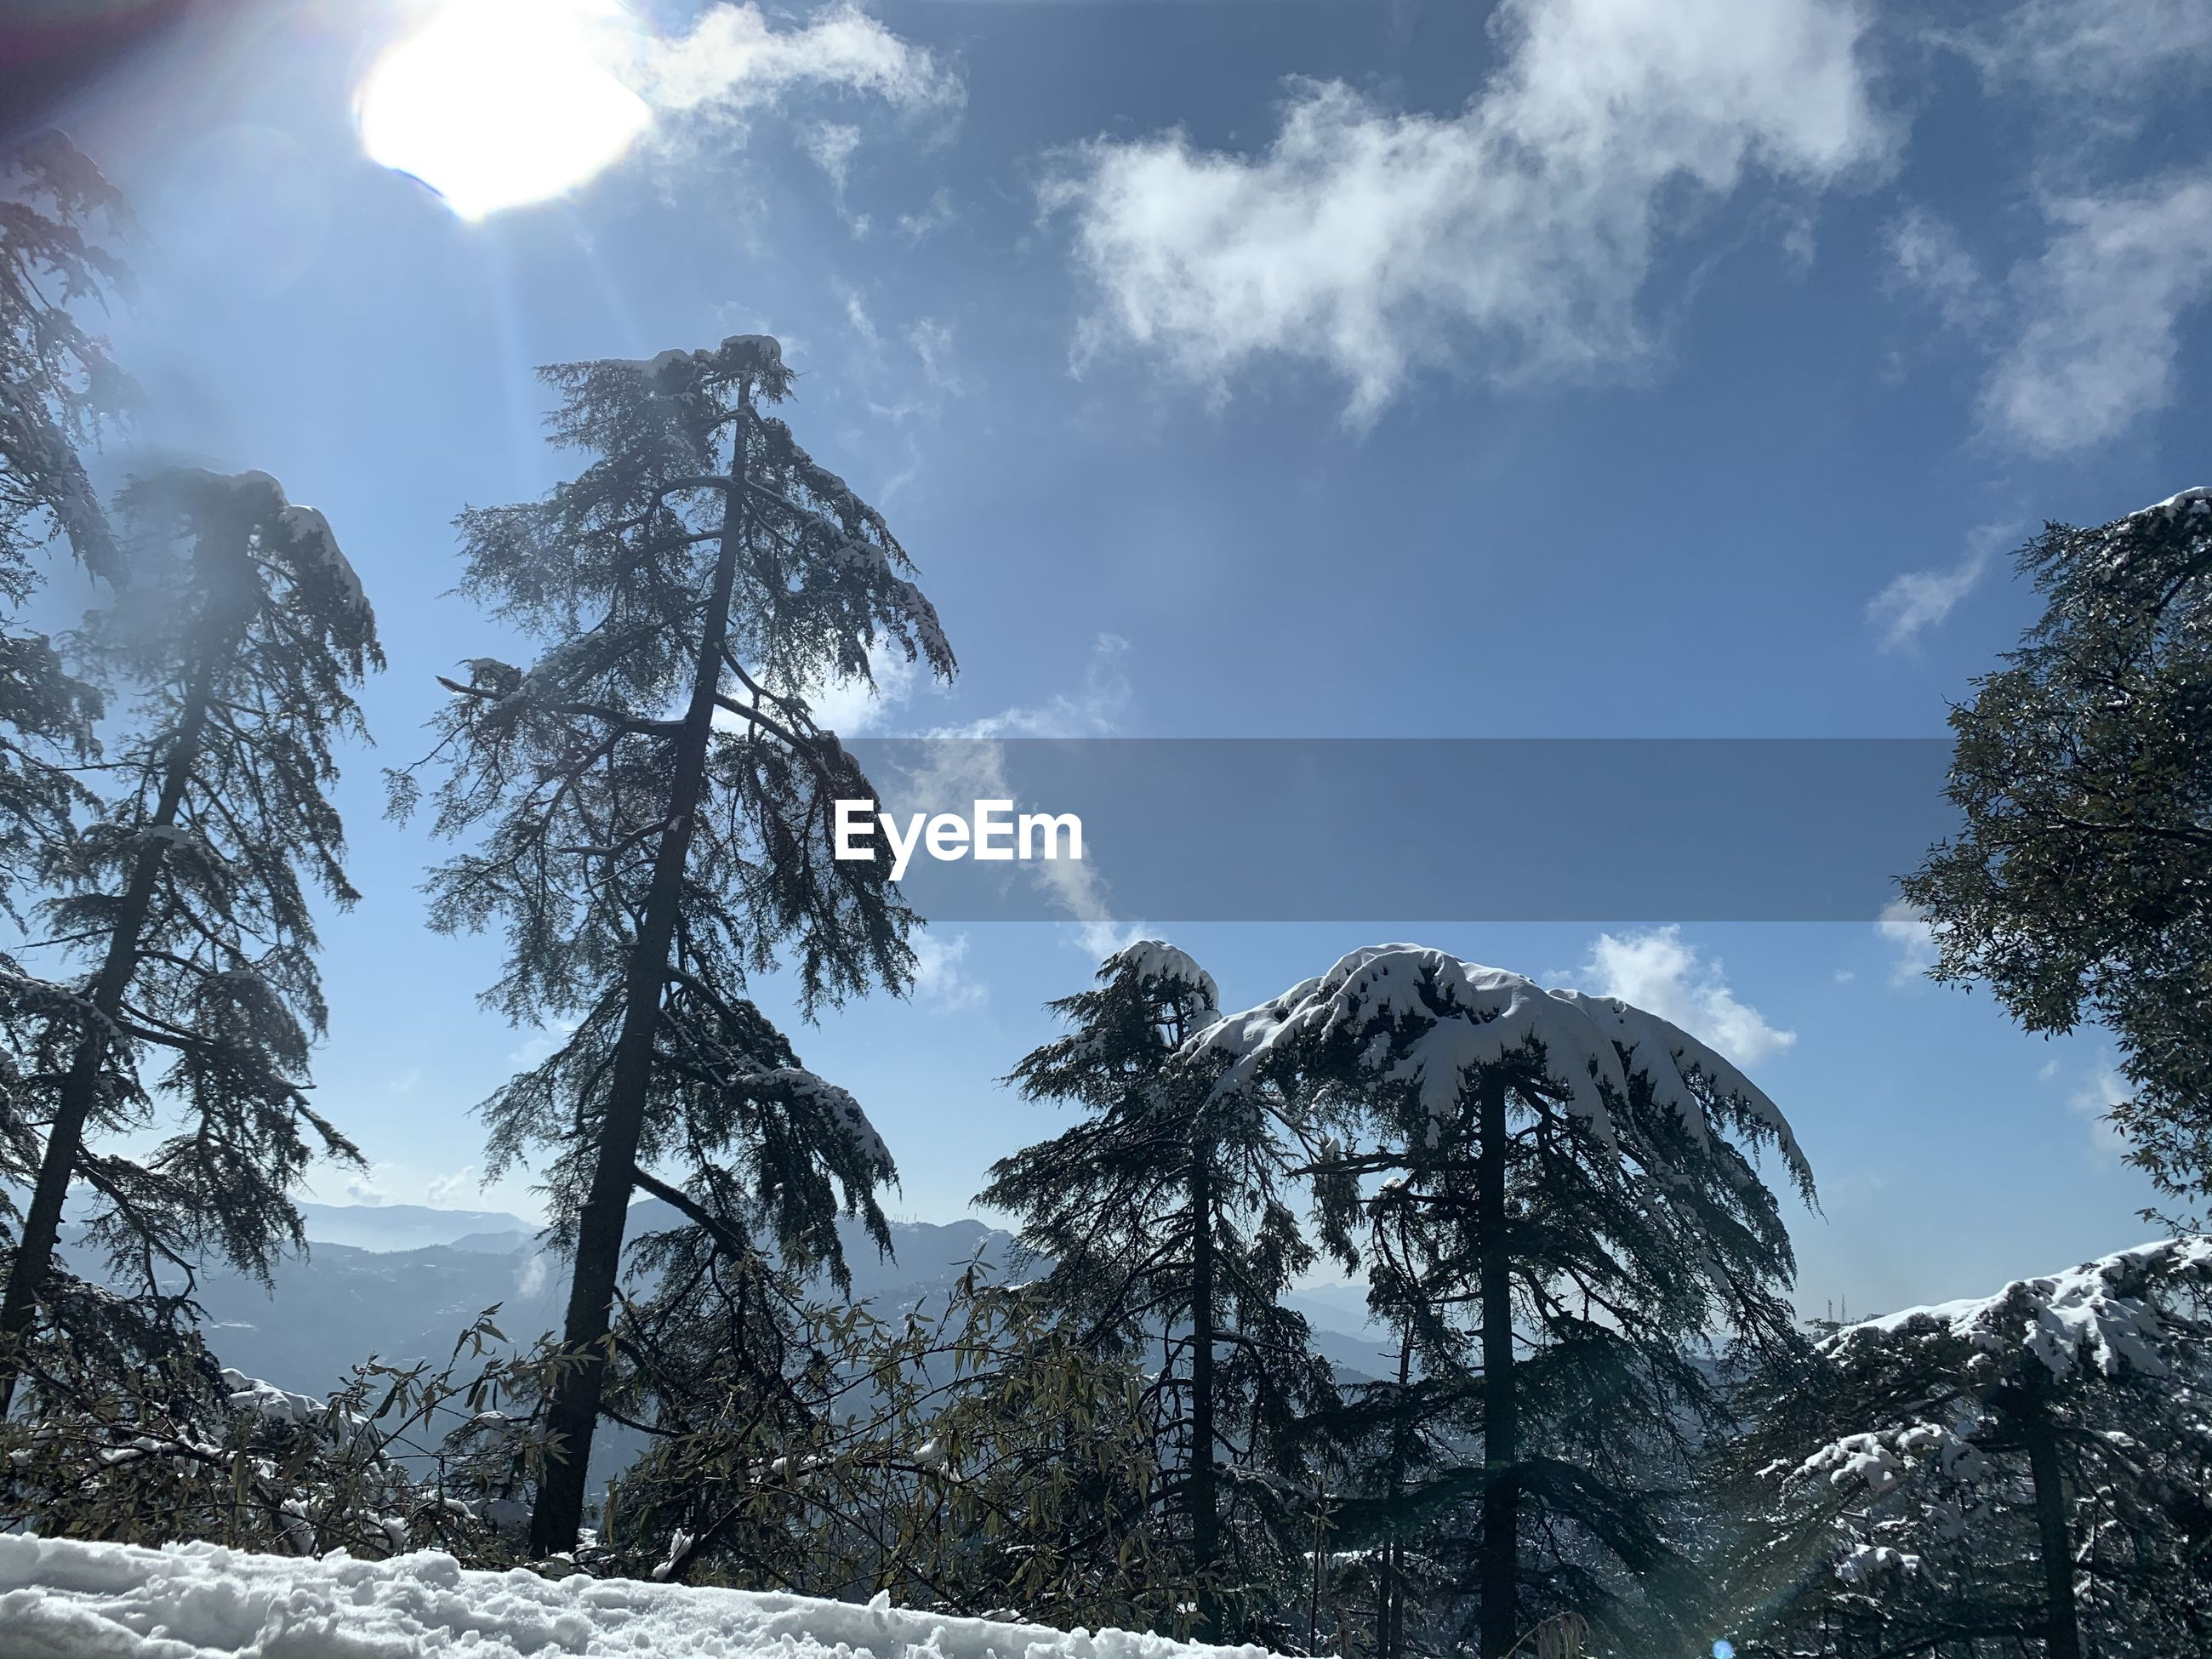 Low angle view of trees and snowcapped mountains against sky